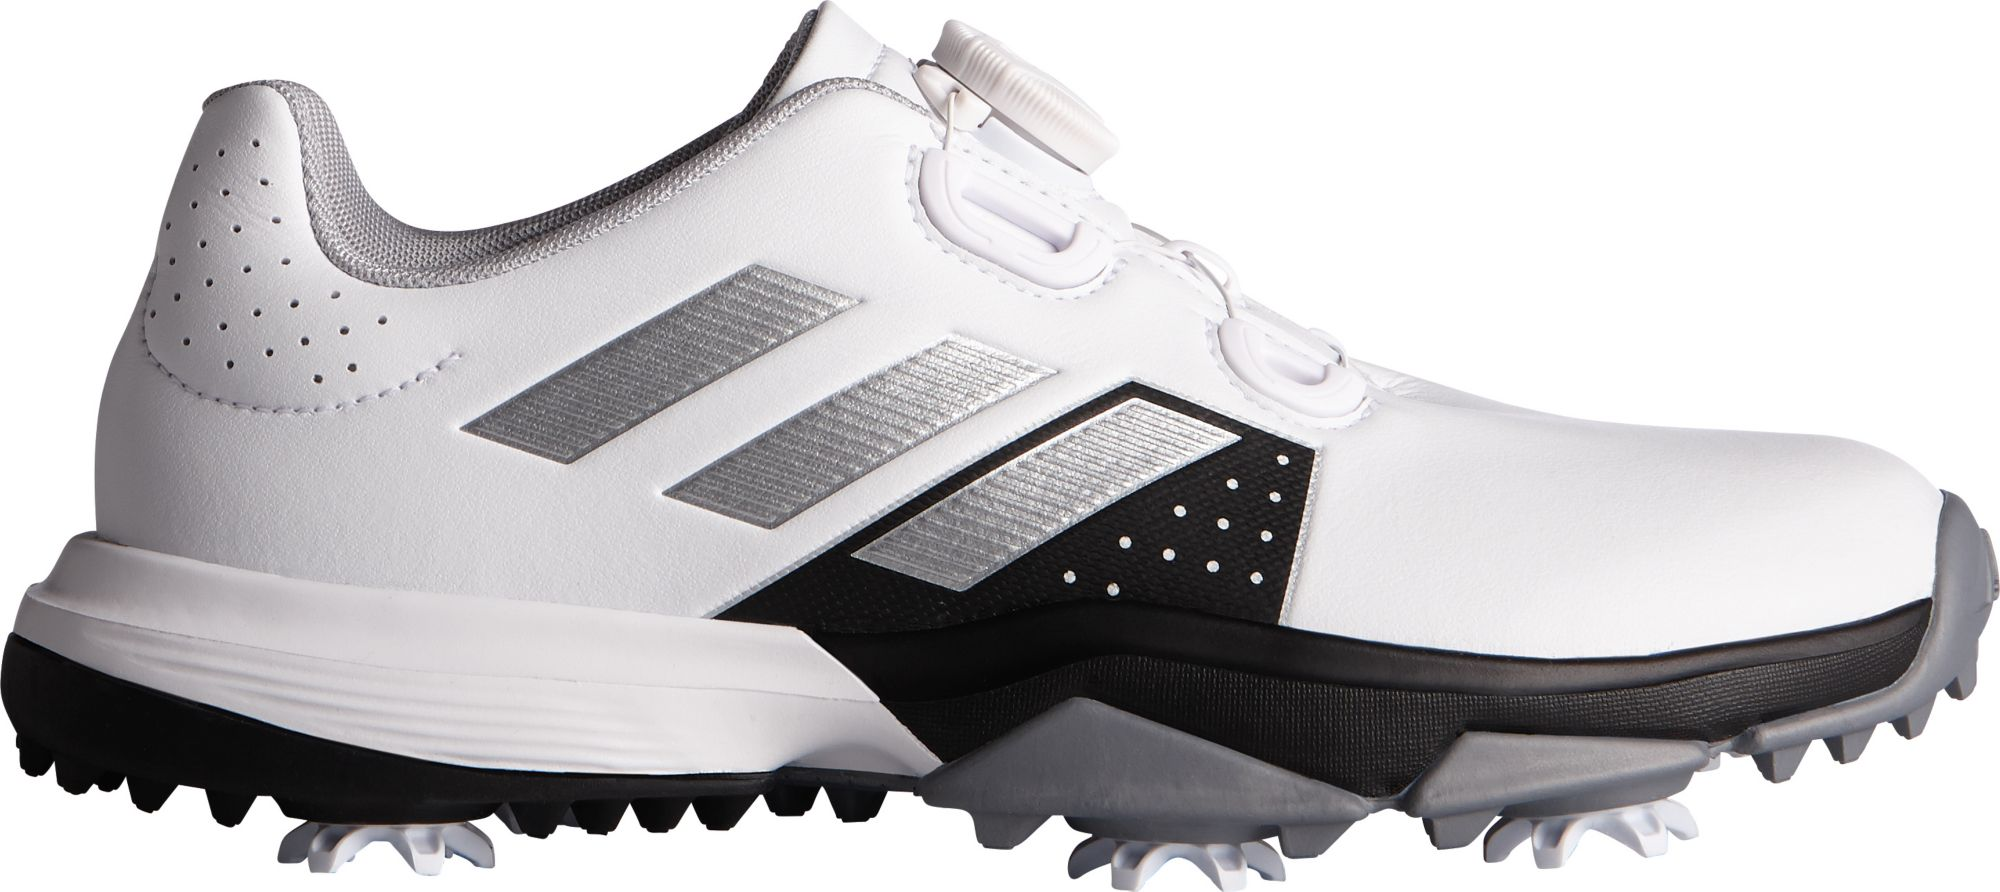 adidas adipure golf shoes clearance